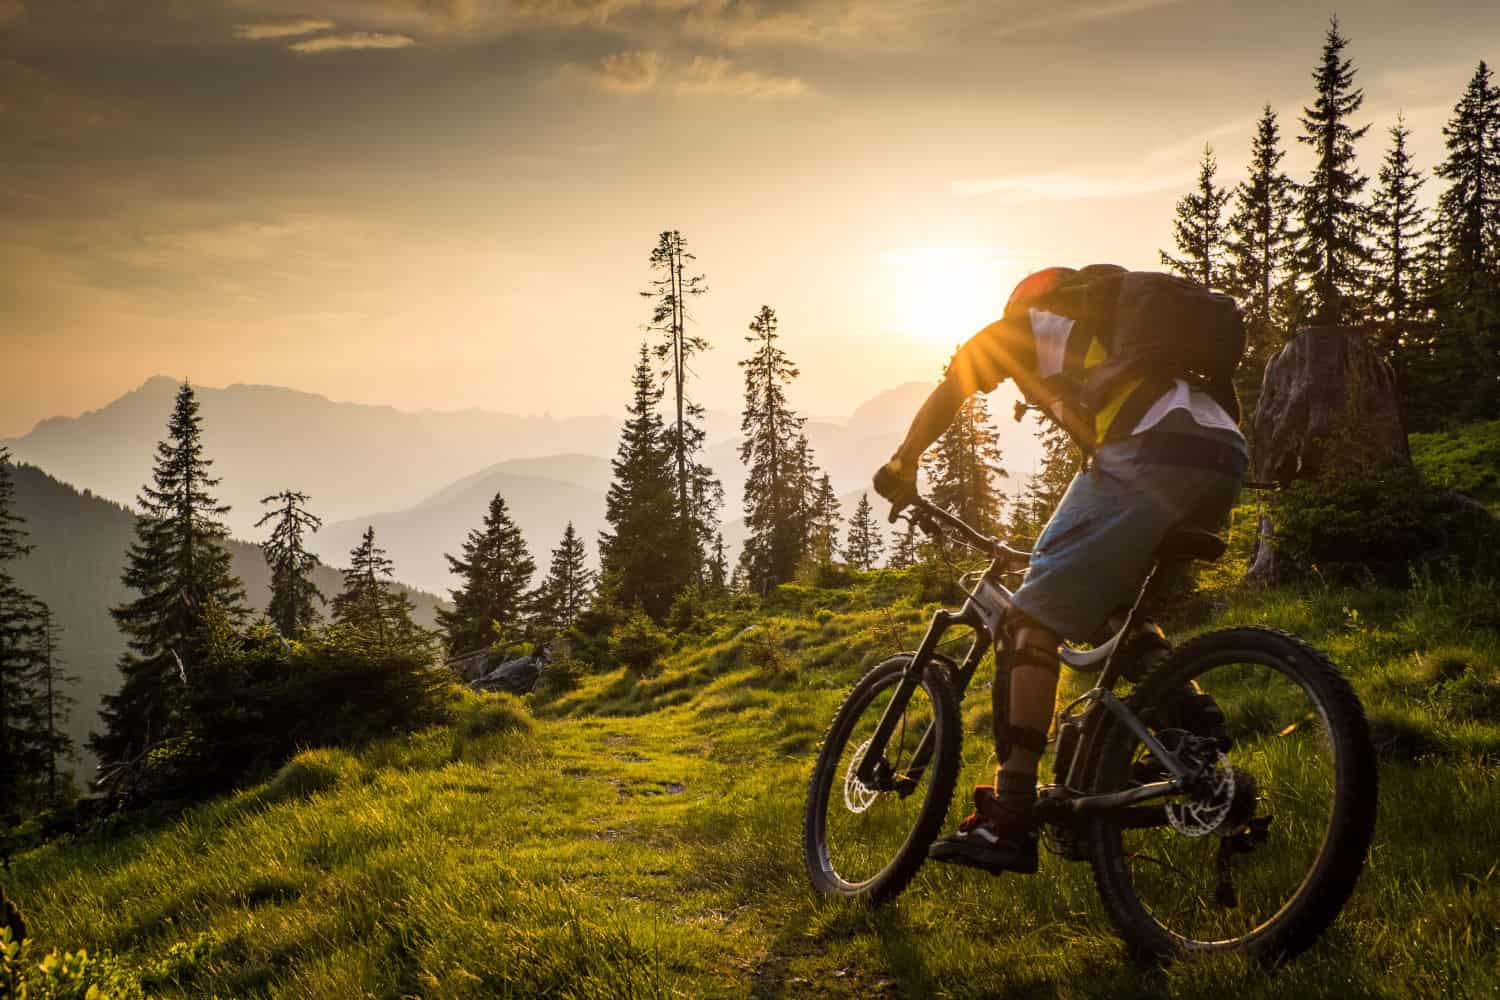 For adrenaline junkies, there is only one destination: The Bikepark Wagrain, one of Austria's best downhill bike park.